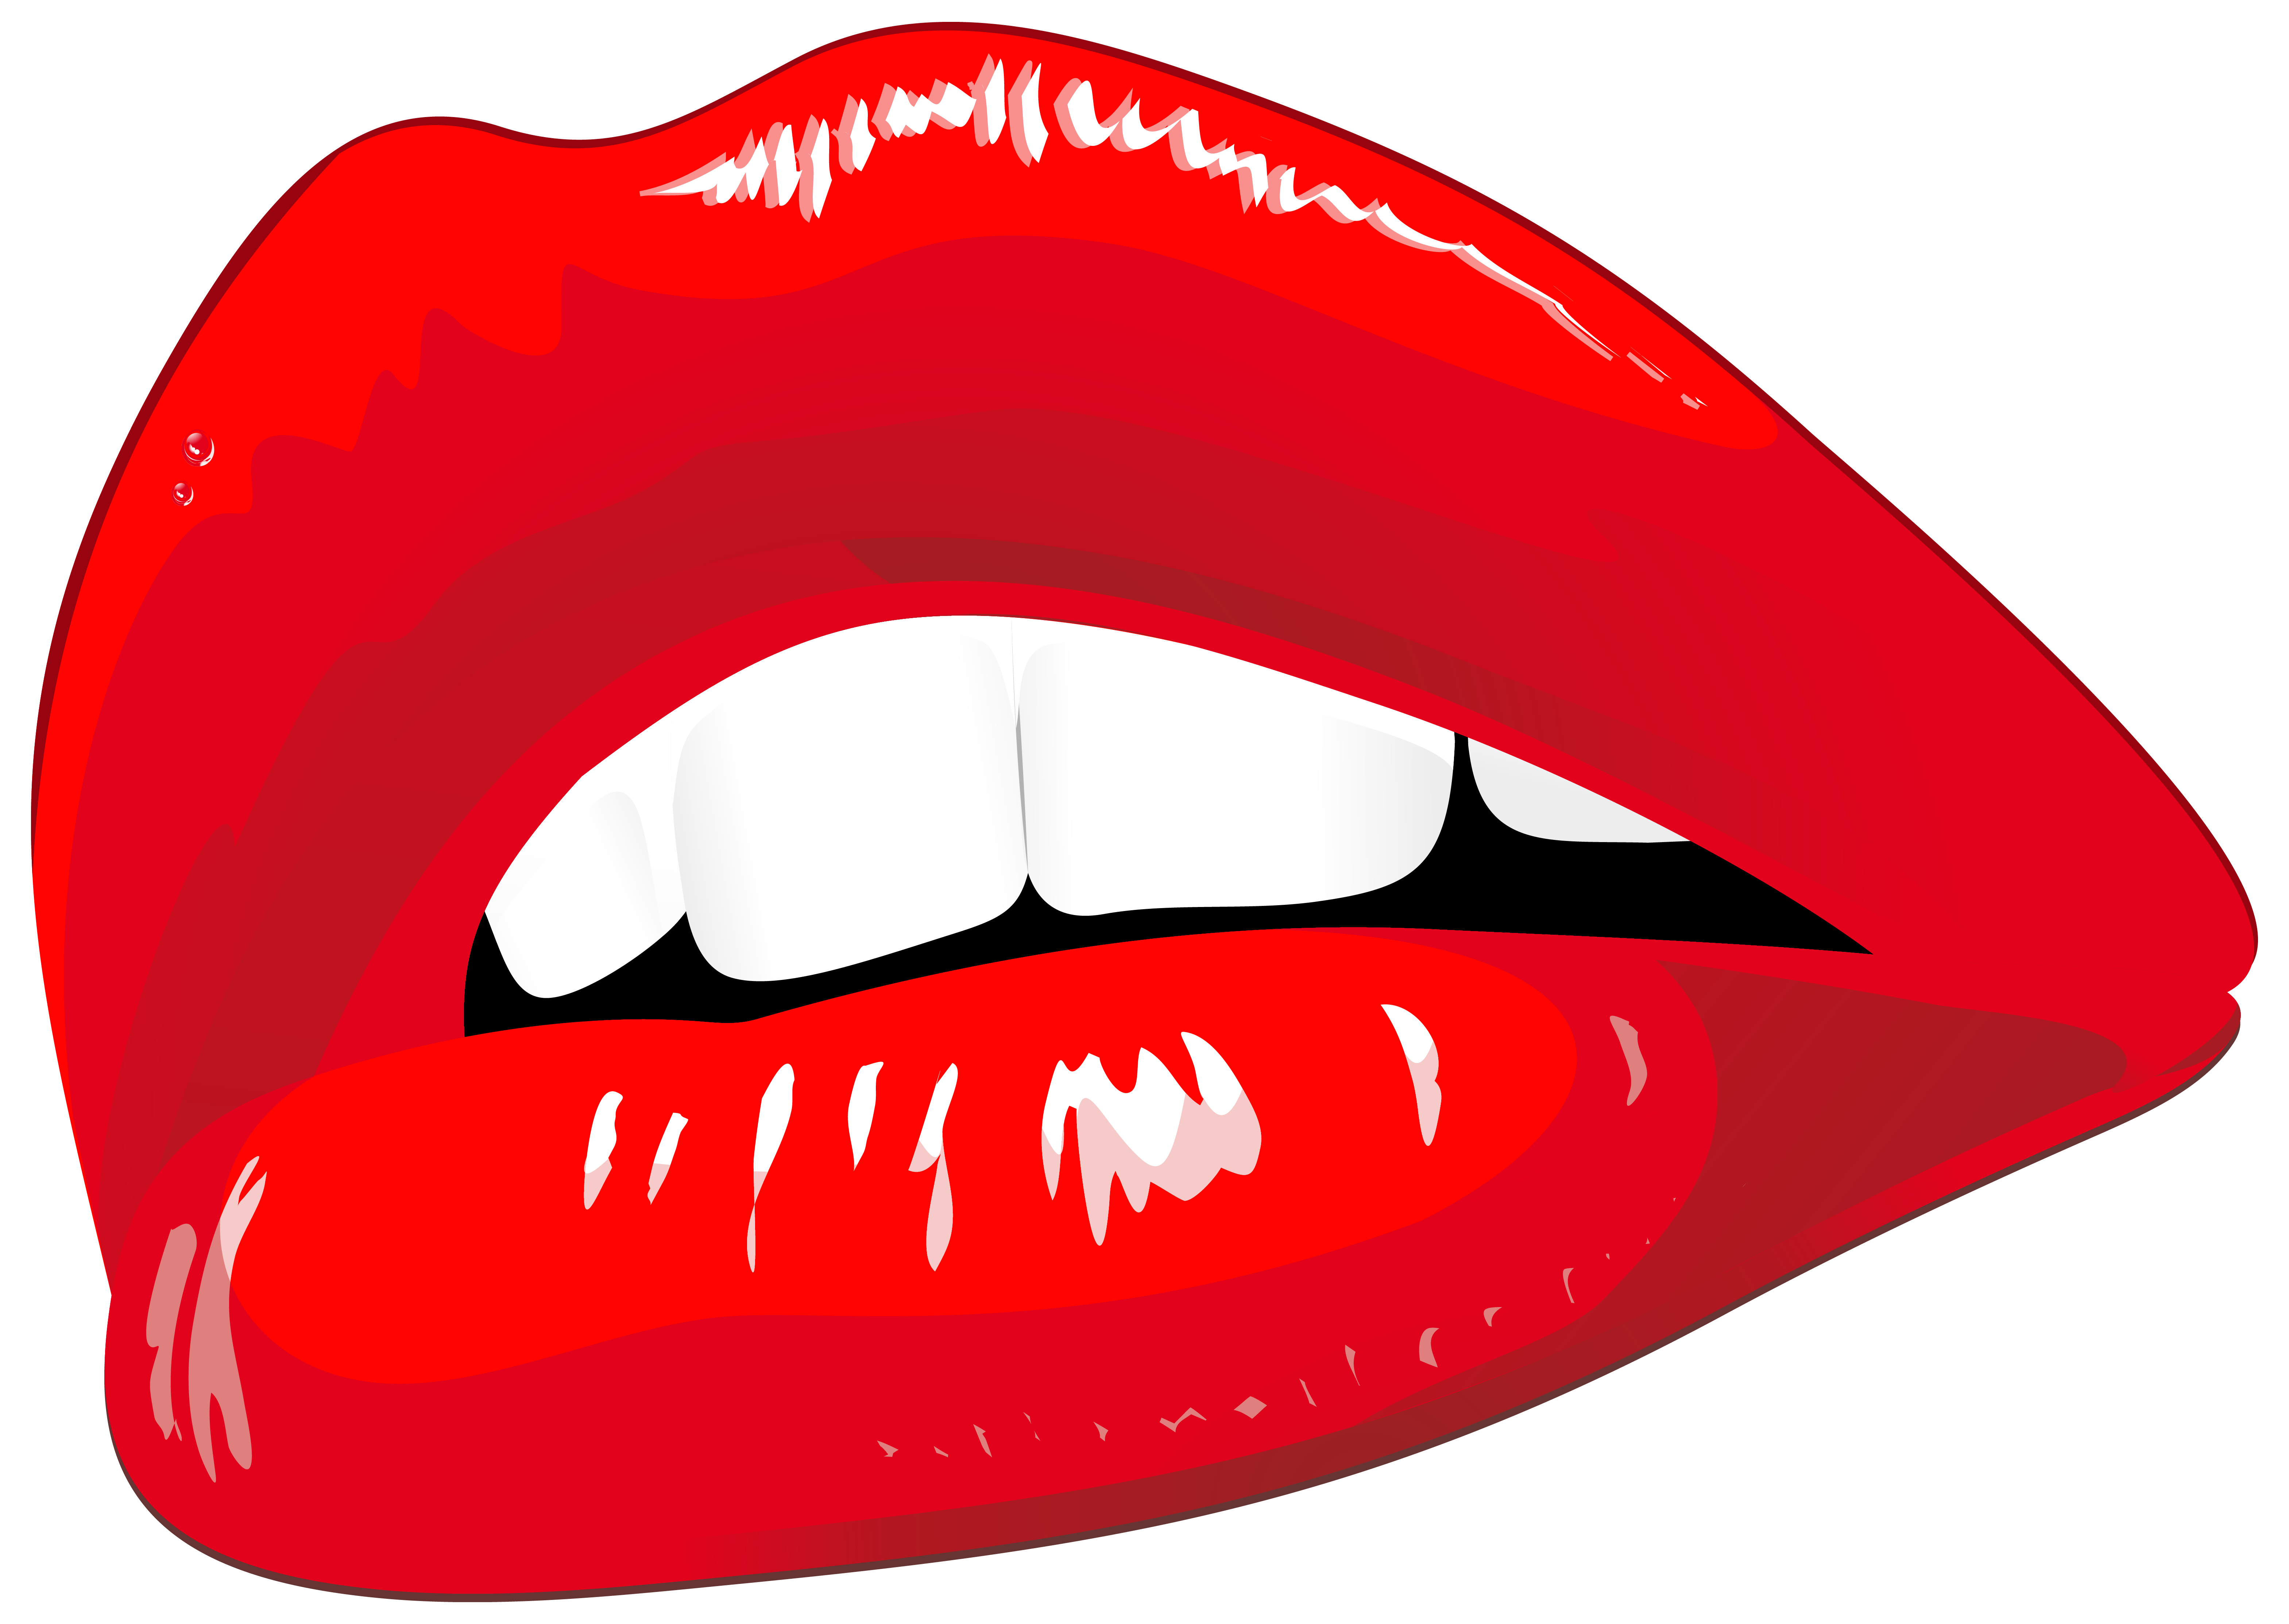 Biting lip clipart transparent background jpg library download Lip Red Computer Icons Clip art - lips png download - 6275*4453 ... jpg library download